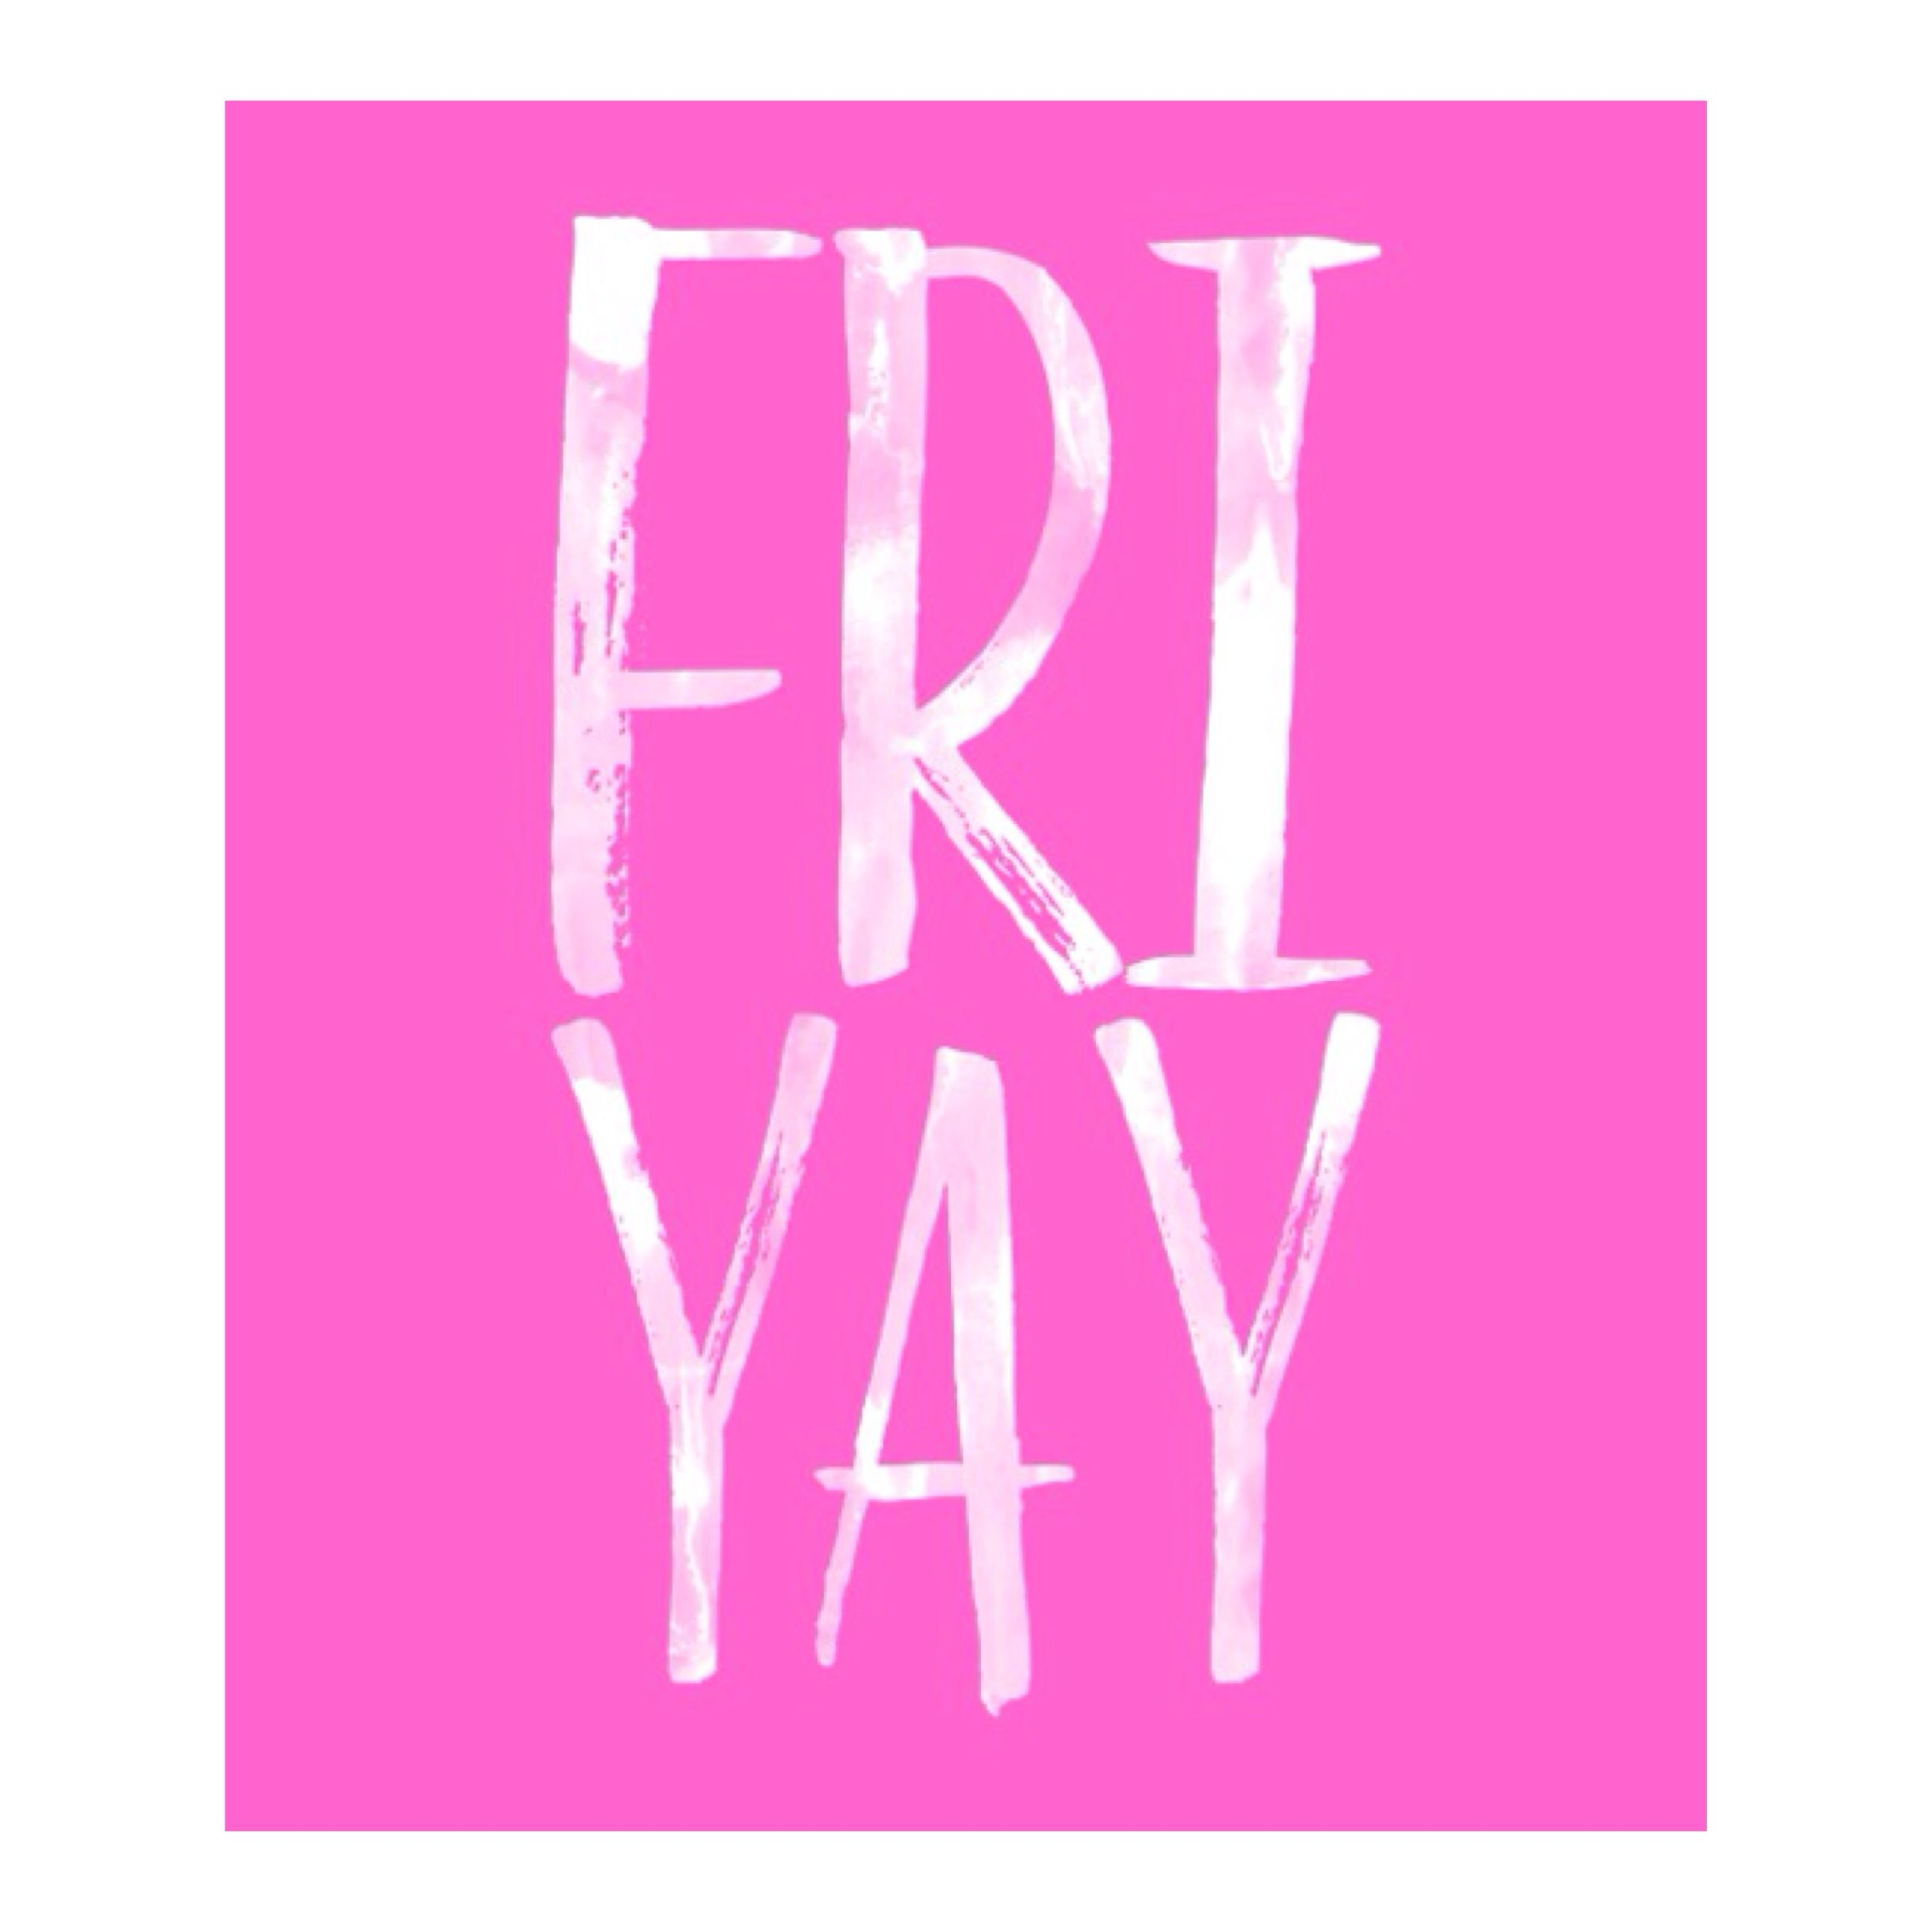 Friday Its friday quotes, Funny photography, Friday